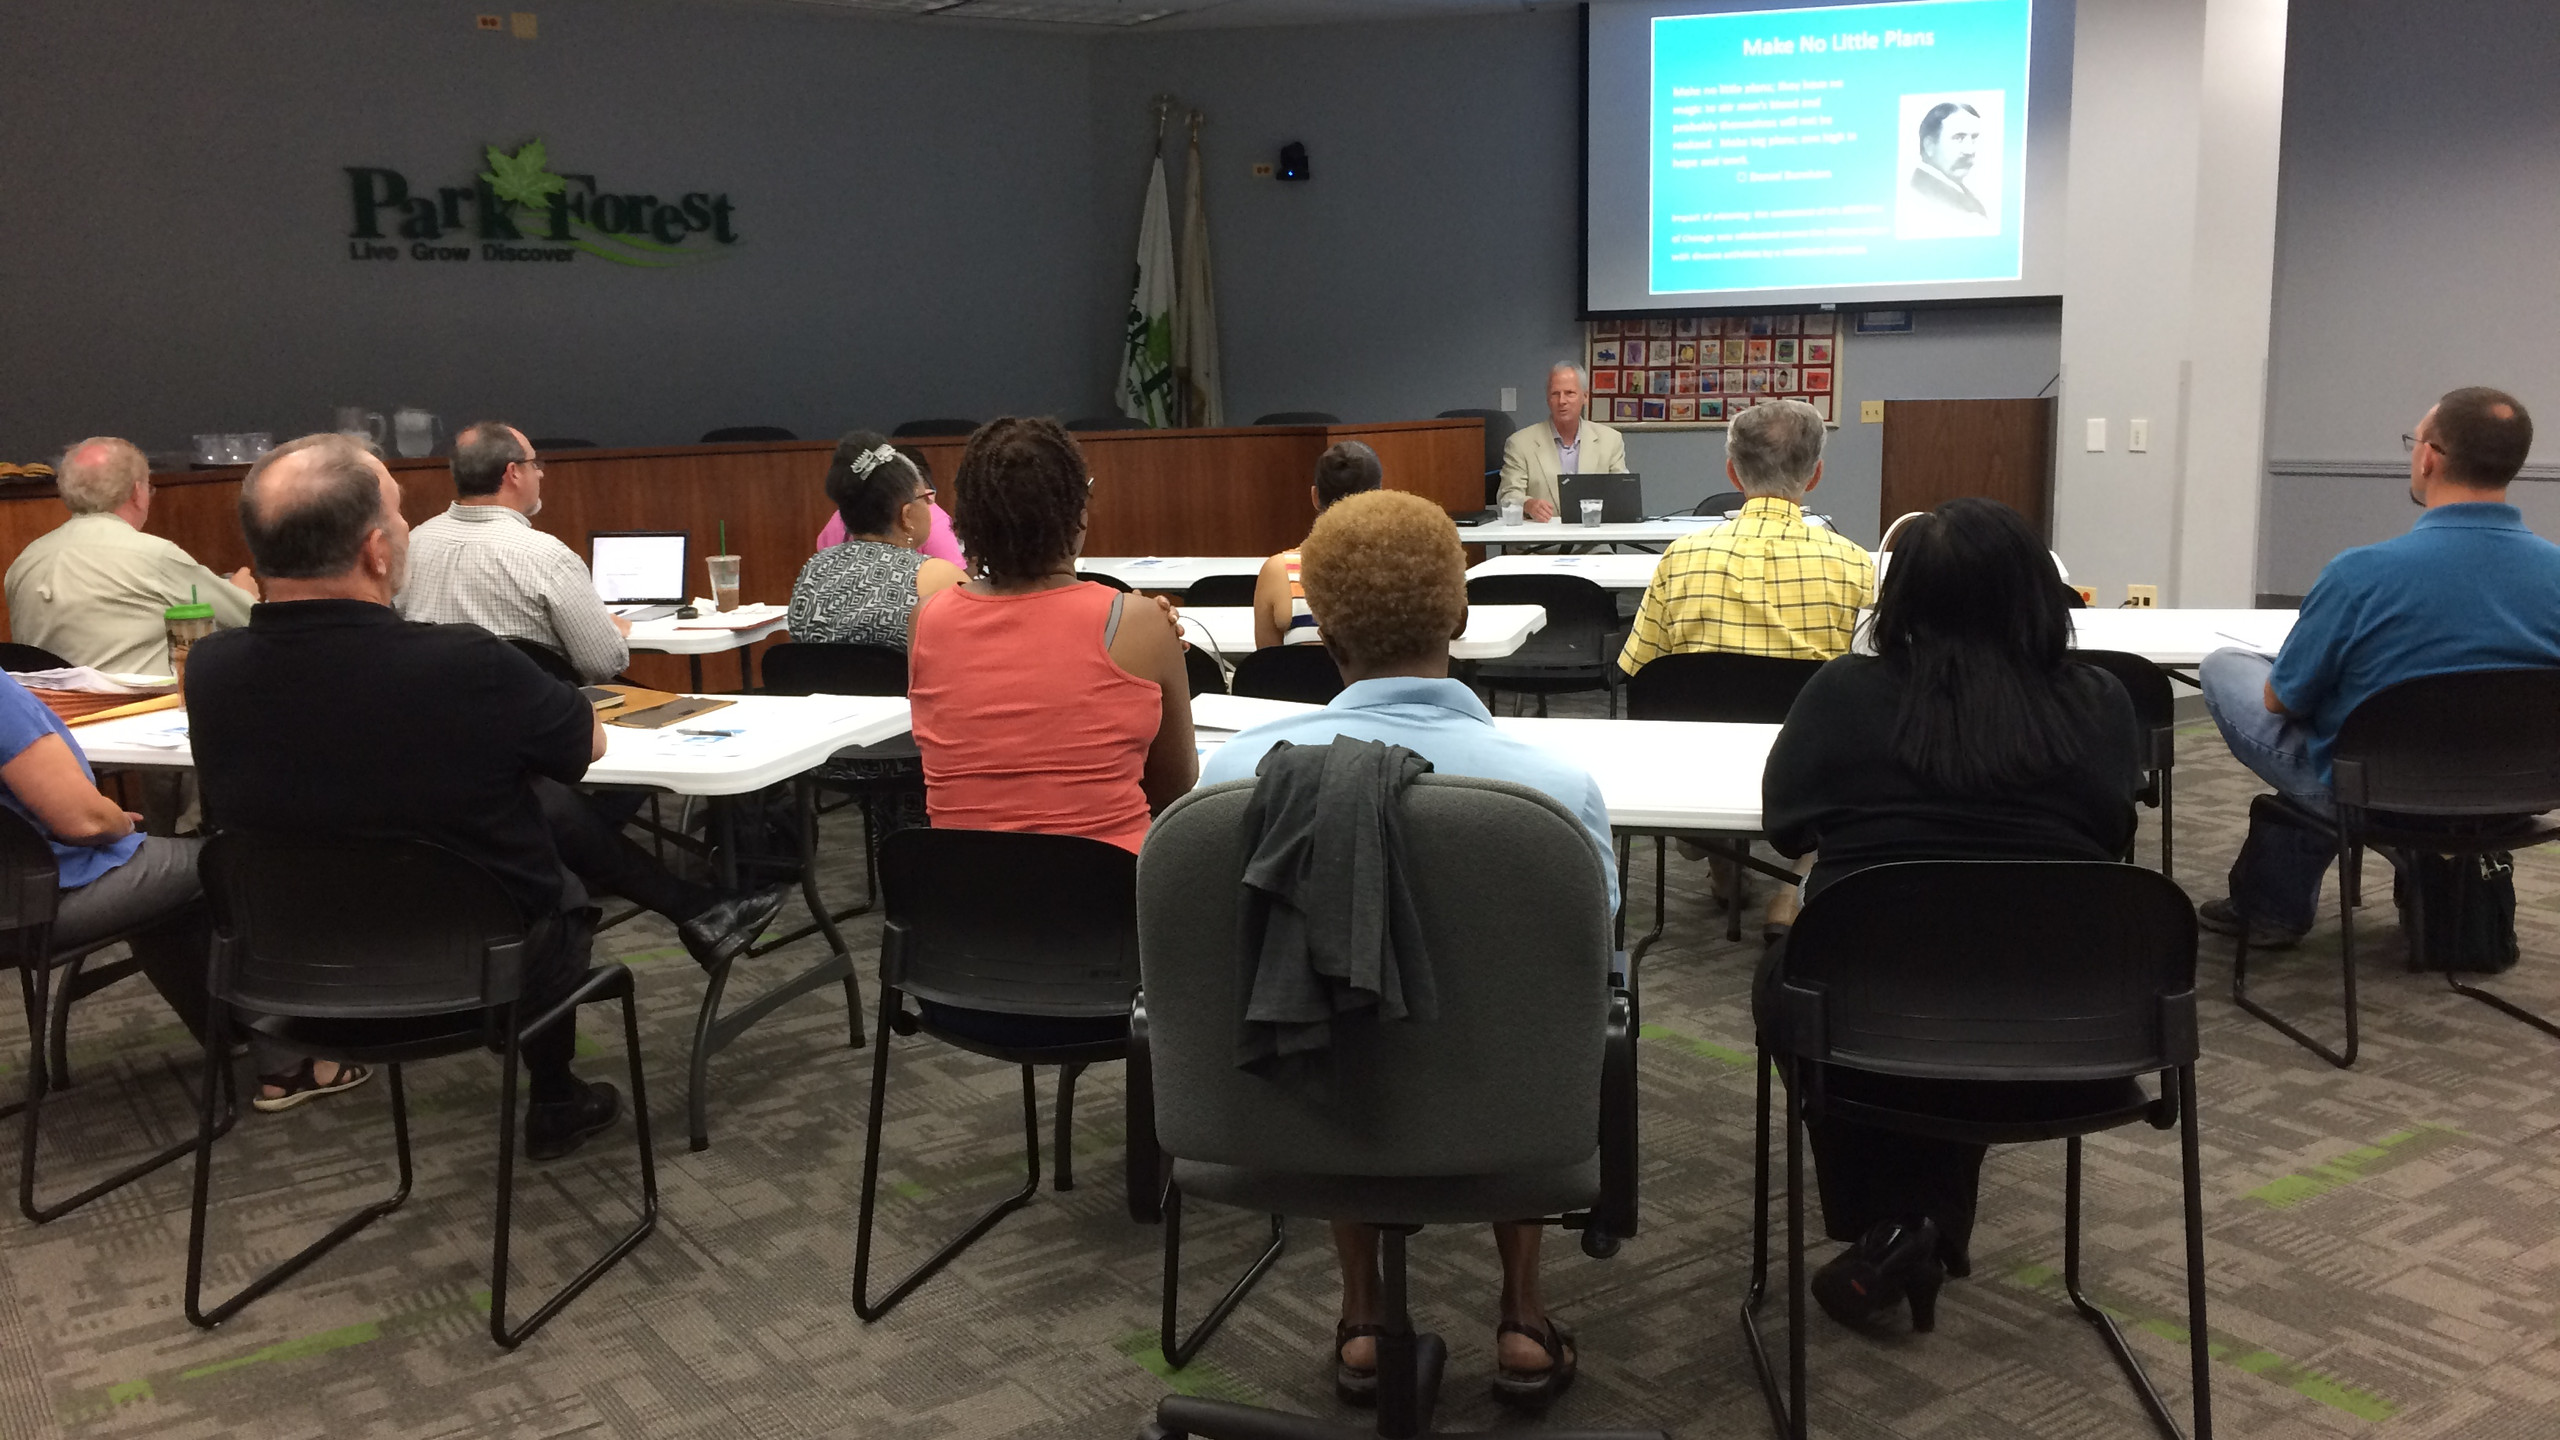 Village of Park Forest Plan Commissioner Training with Bob Sullivan, FAICP and Laurie Marston, FAICP on 7/10/2018